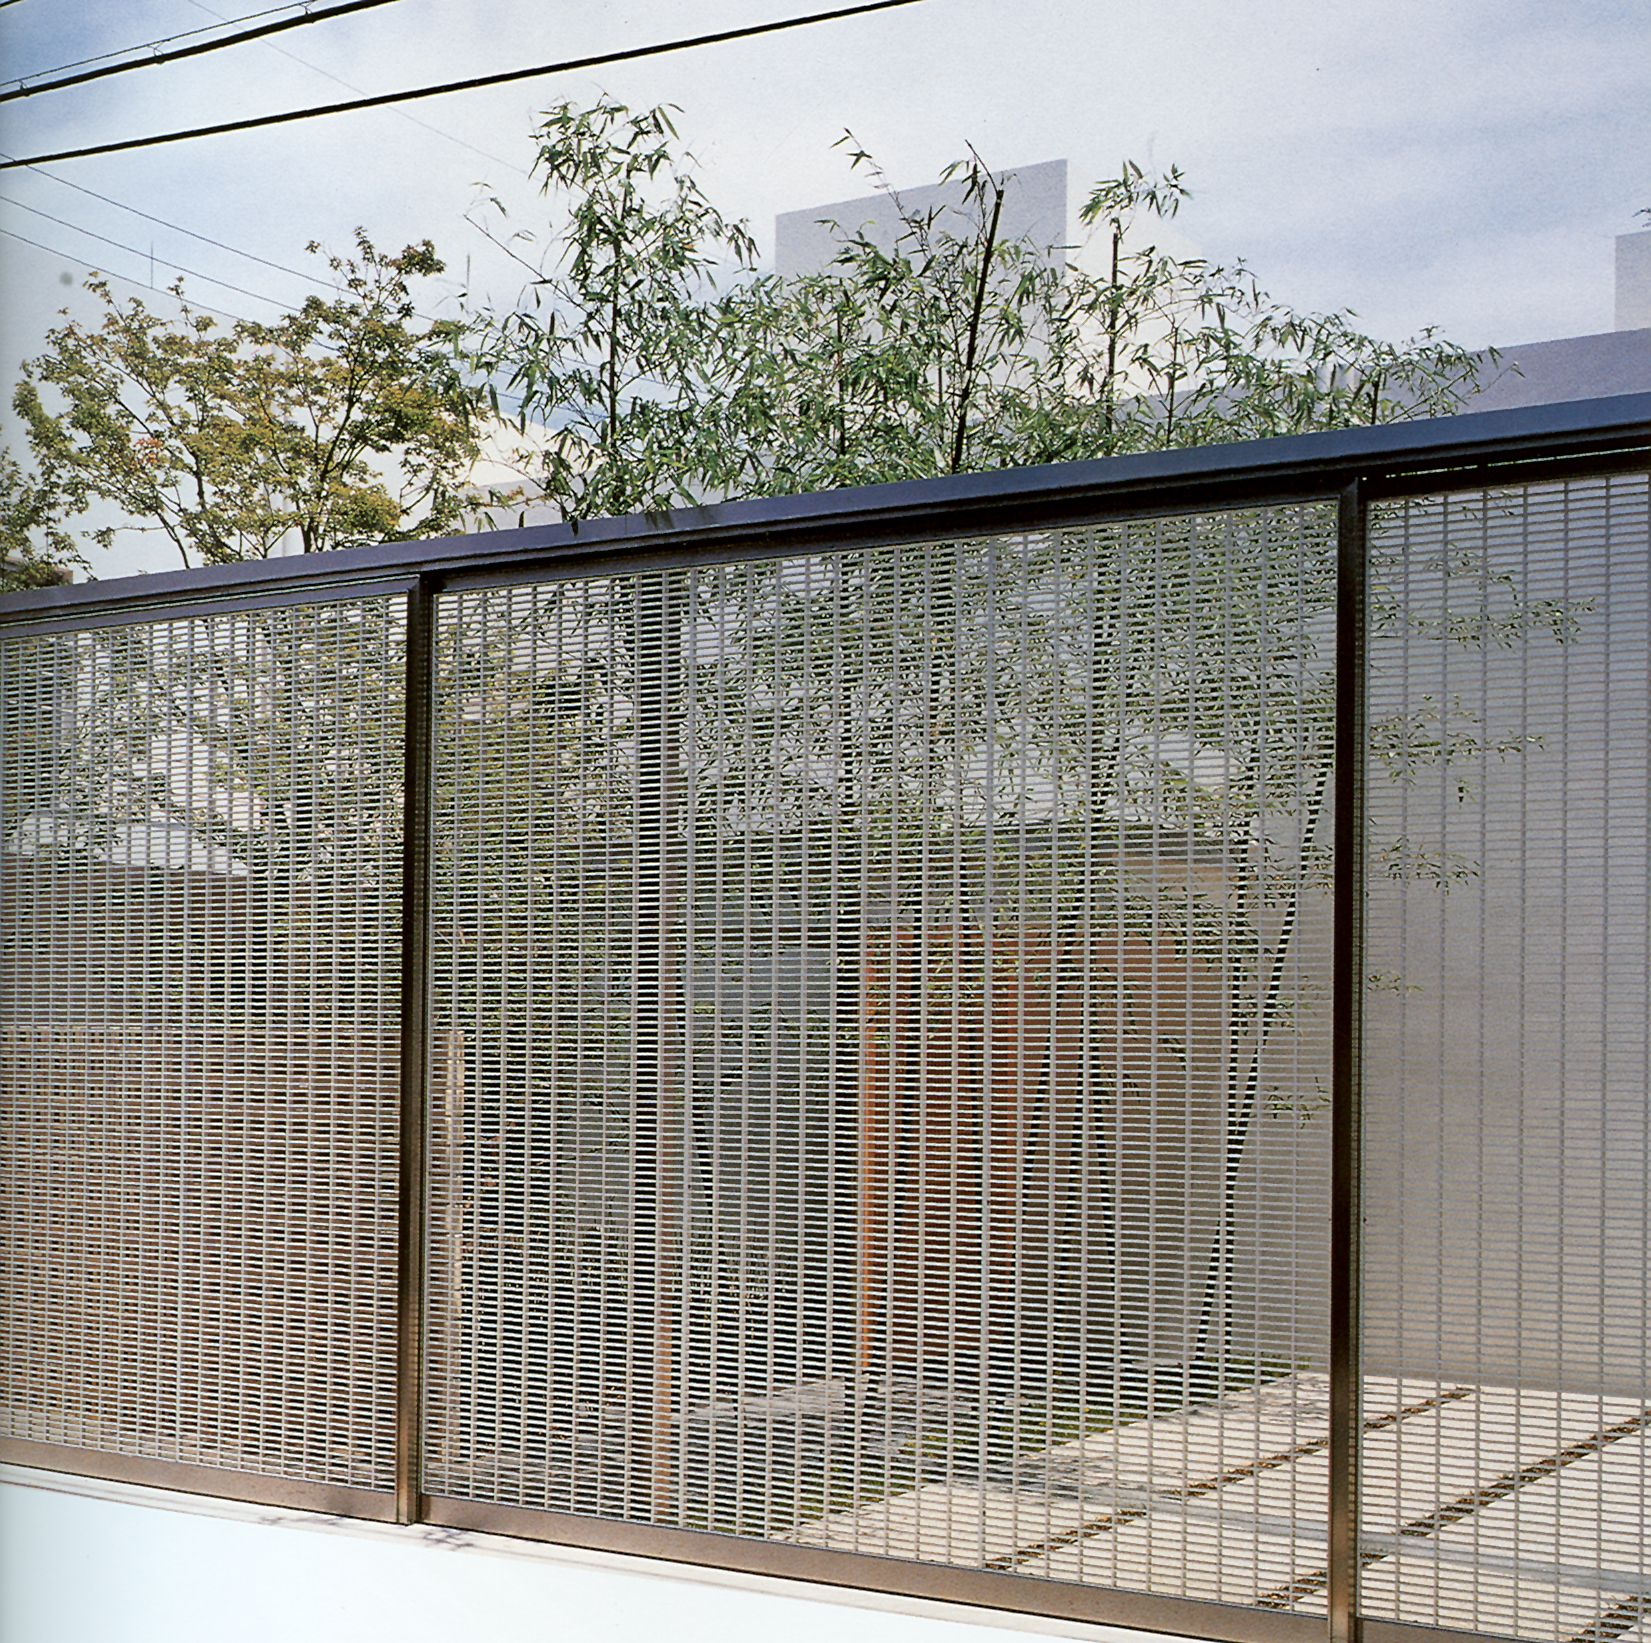 Pin by charles elliott on fencing | Pinterest | Steel, Fences and Gates